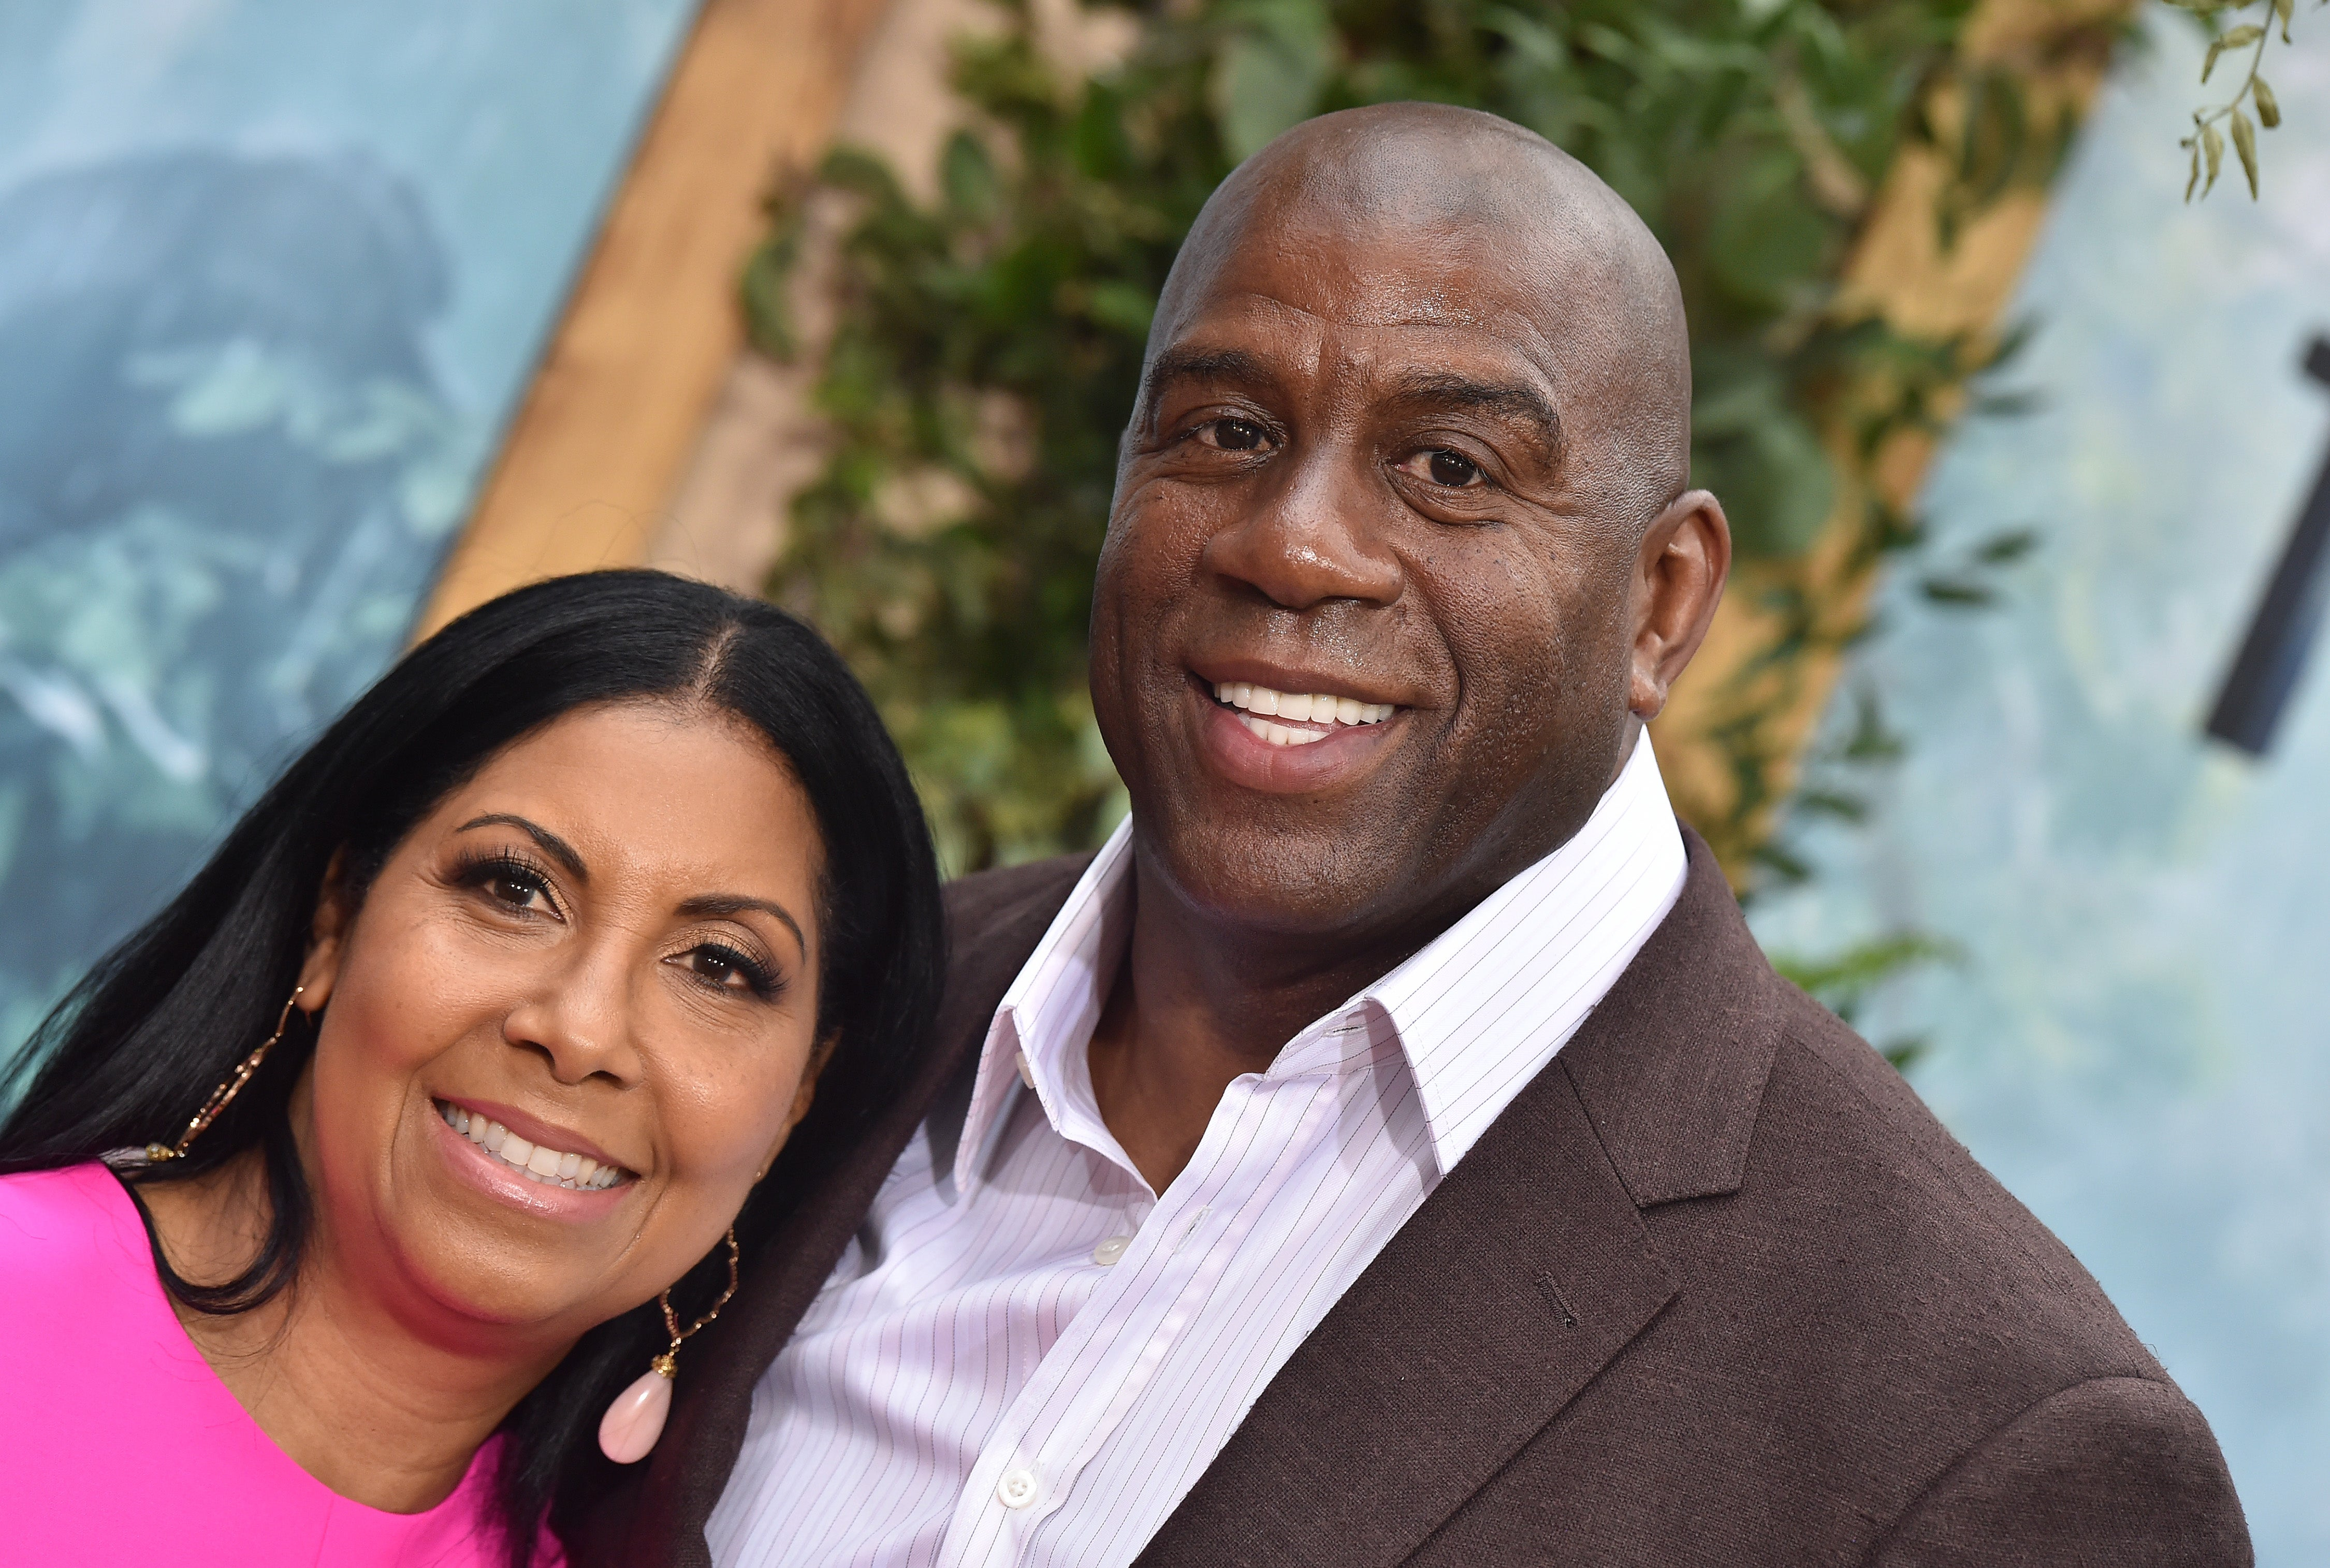 Magic Johnson and Wife Cookie Celebrate 25 Years of Marriage In a Big Way With All Of Their Couple Friends